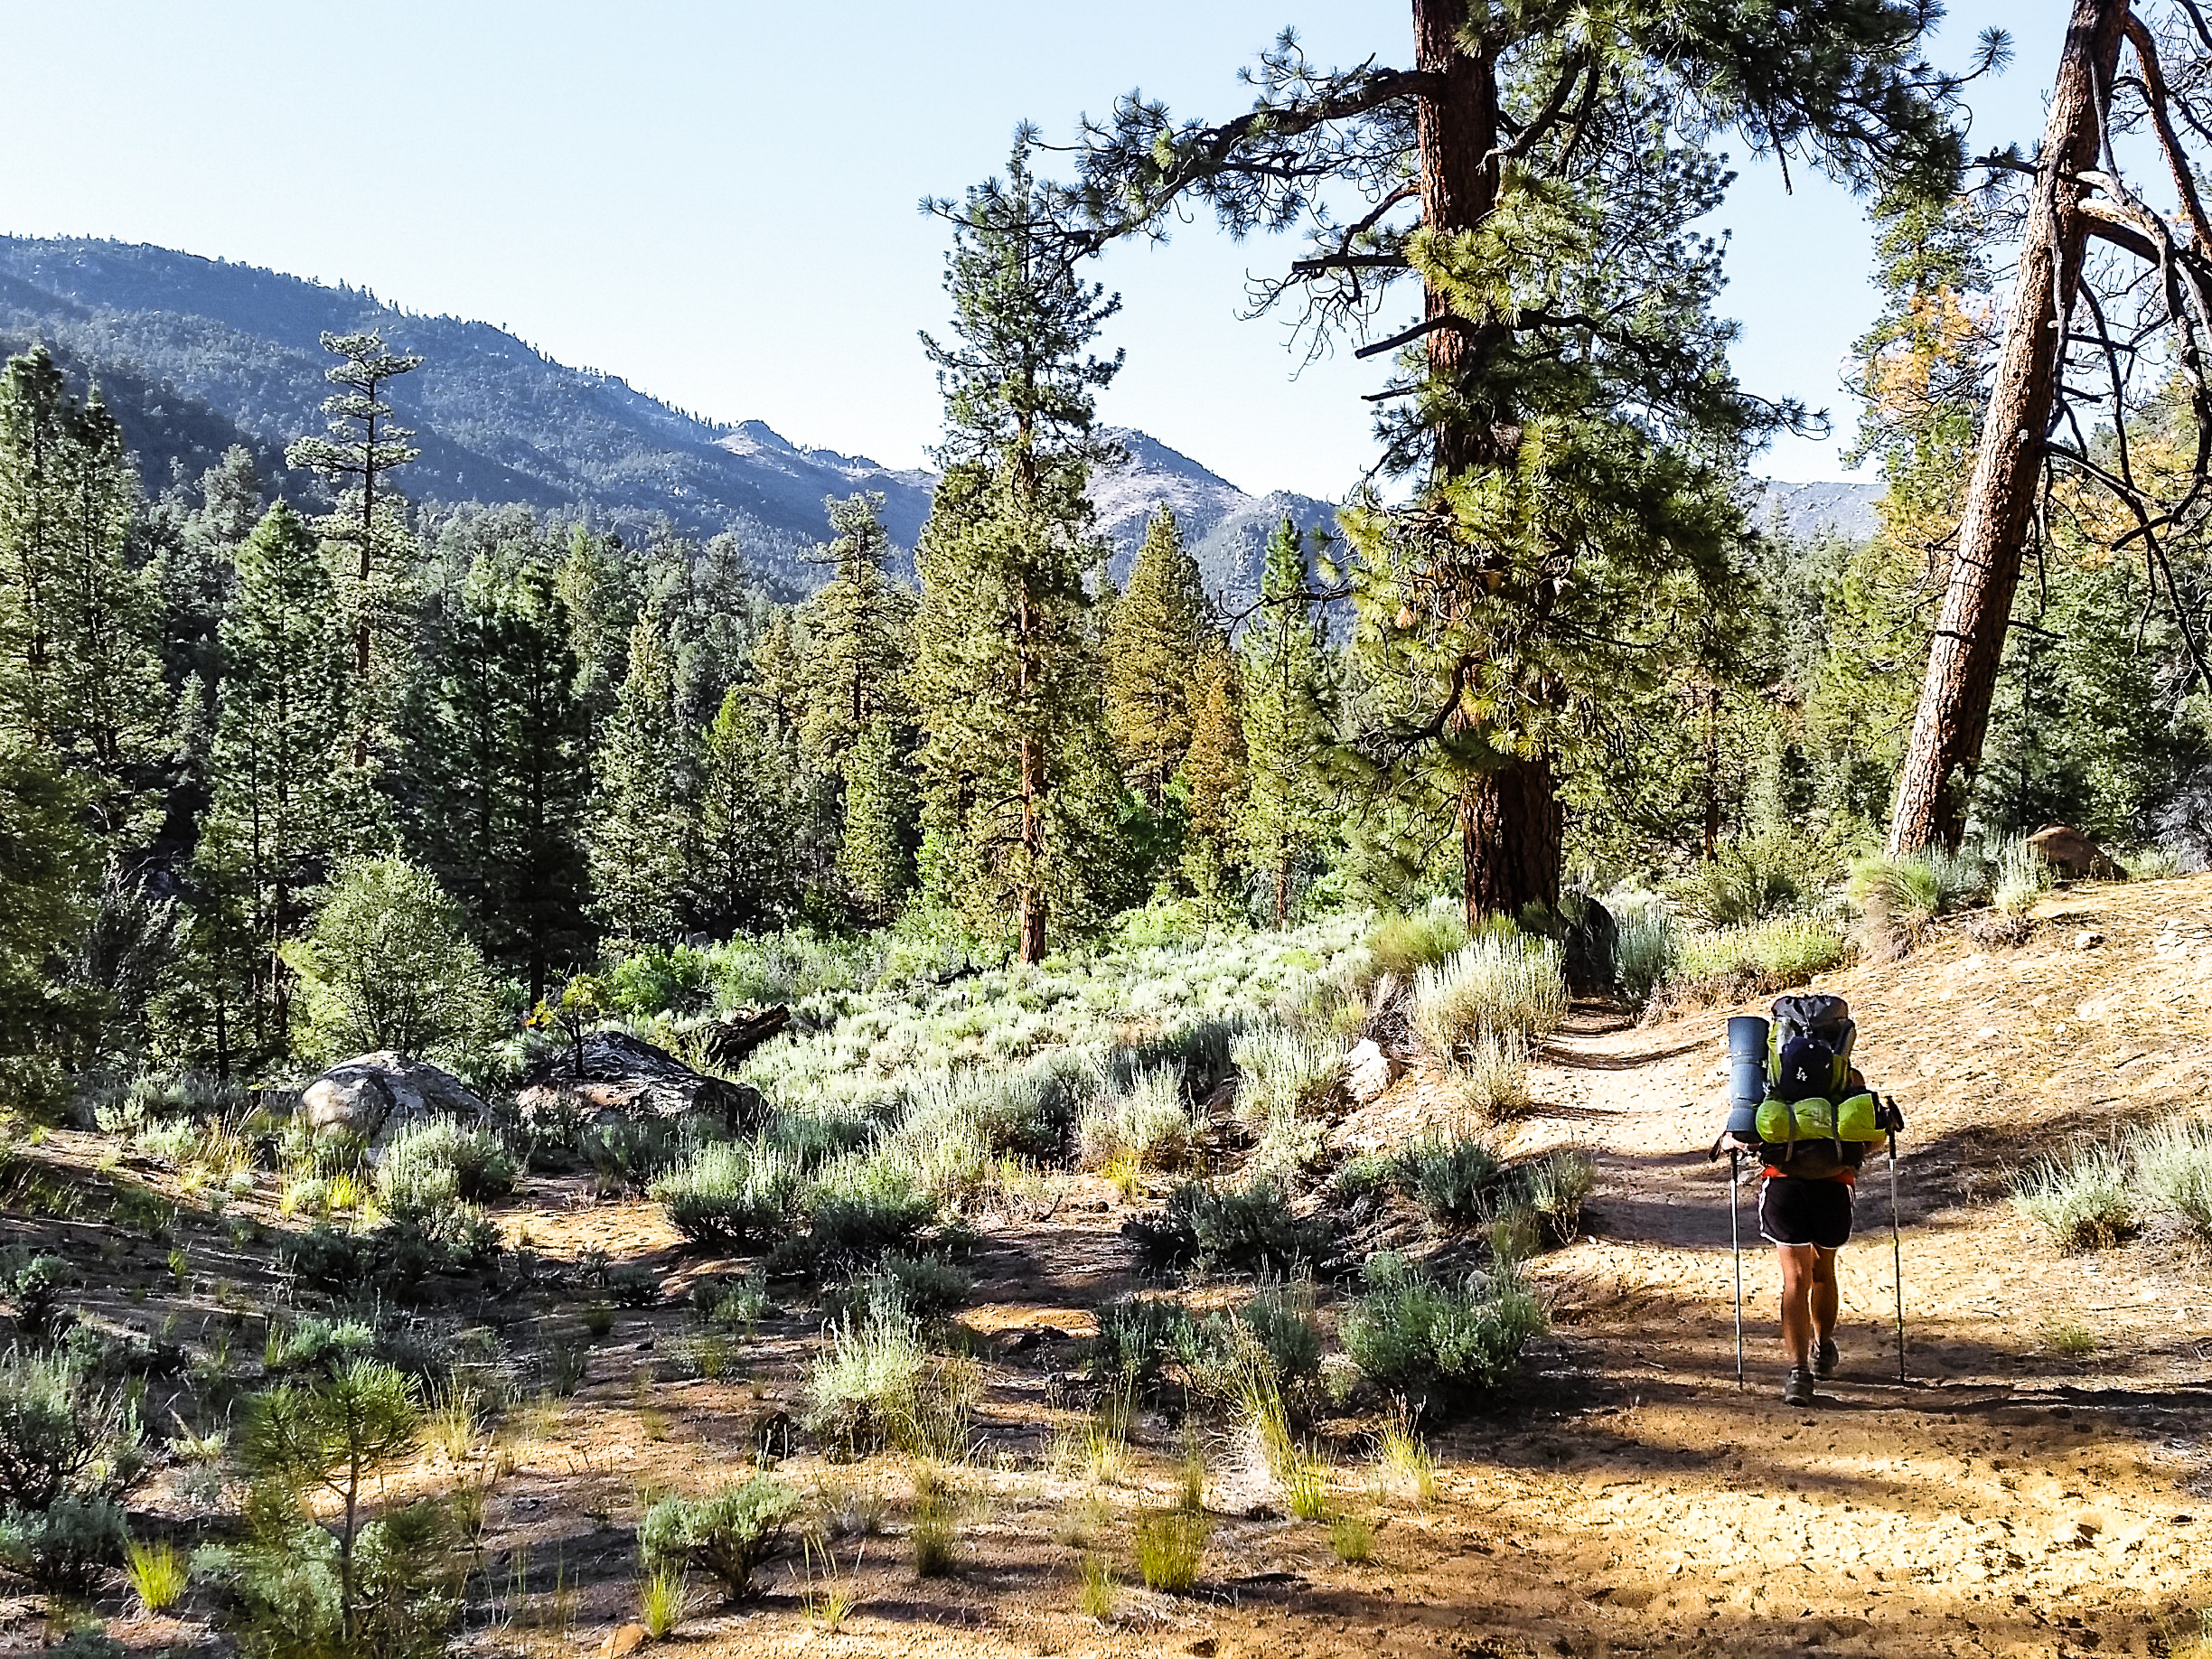 Hiked out of Kennedy Meadows on June 16